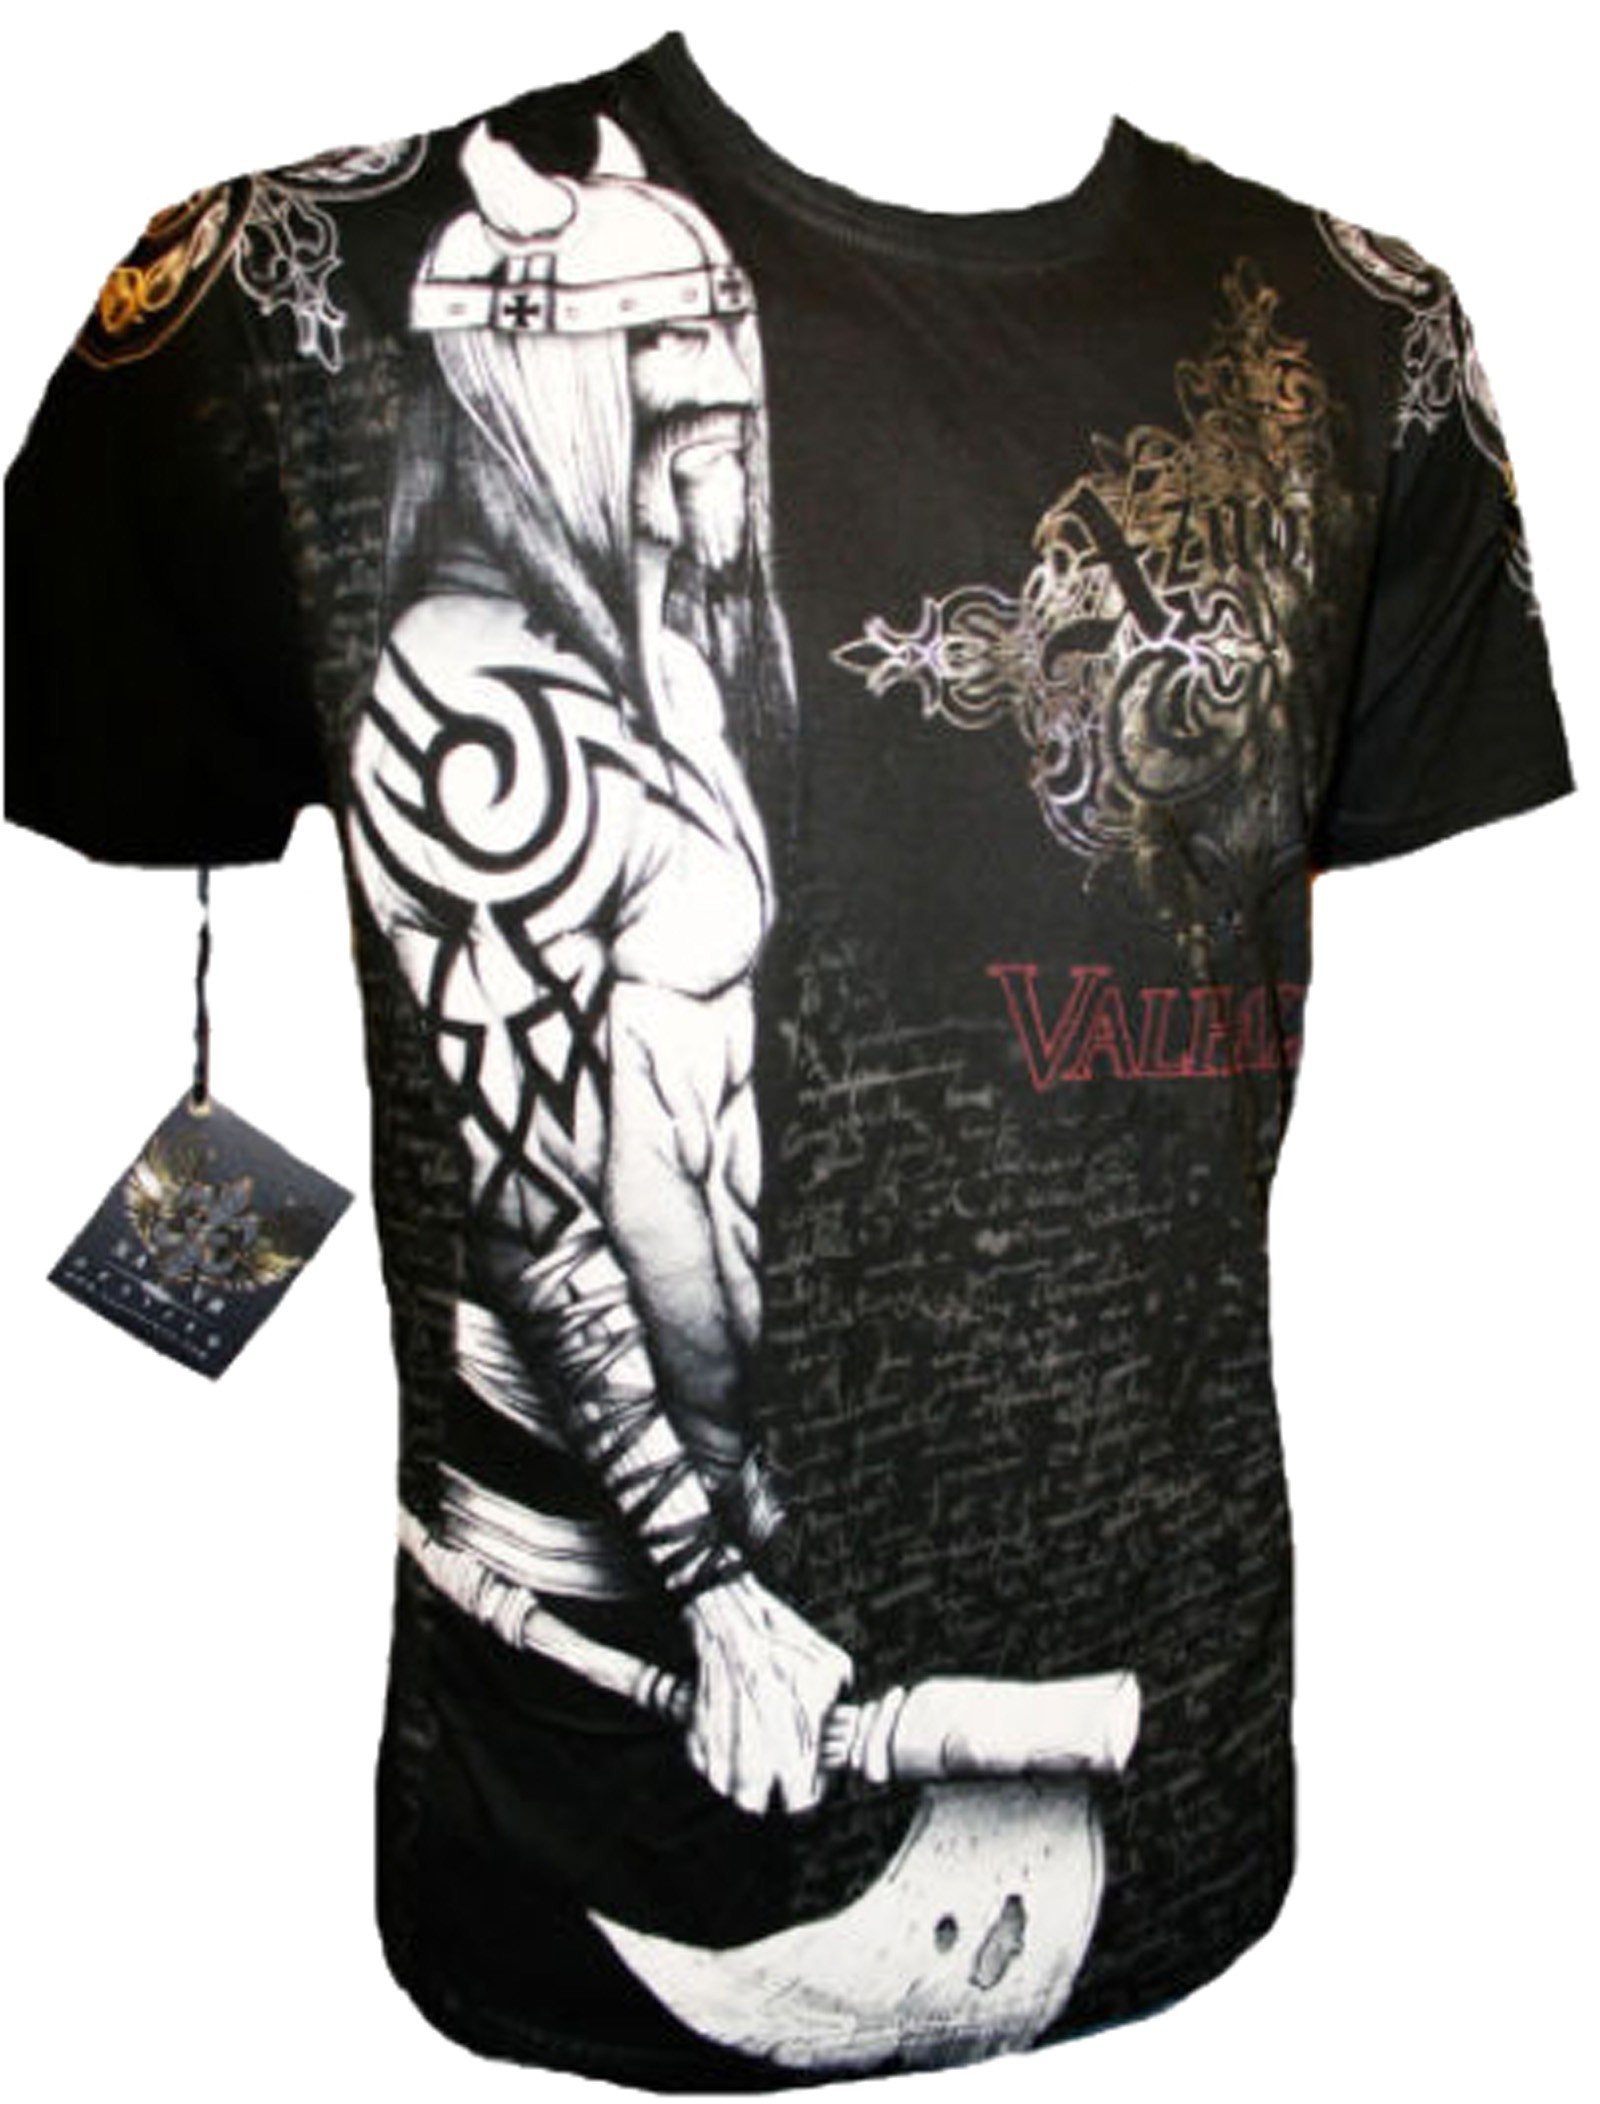 Xzavier - Elite Warrior T-Shirt